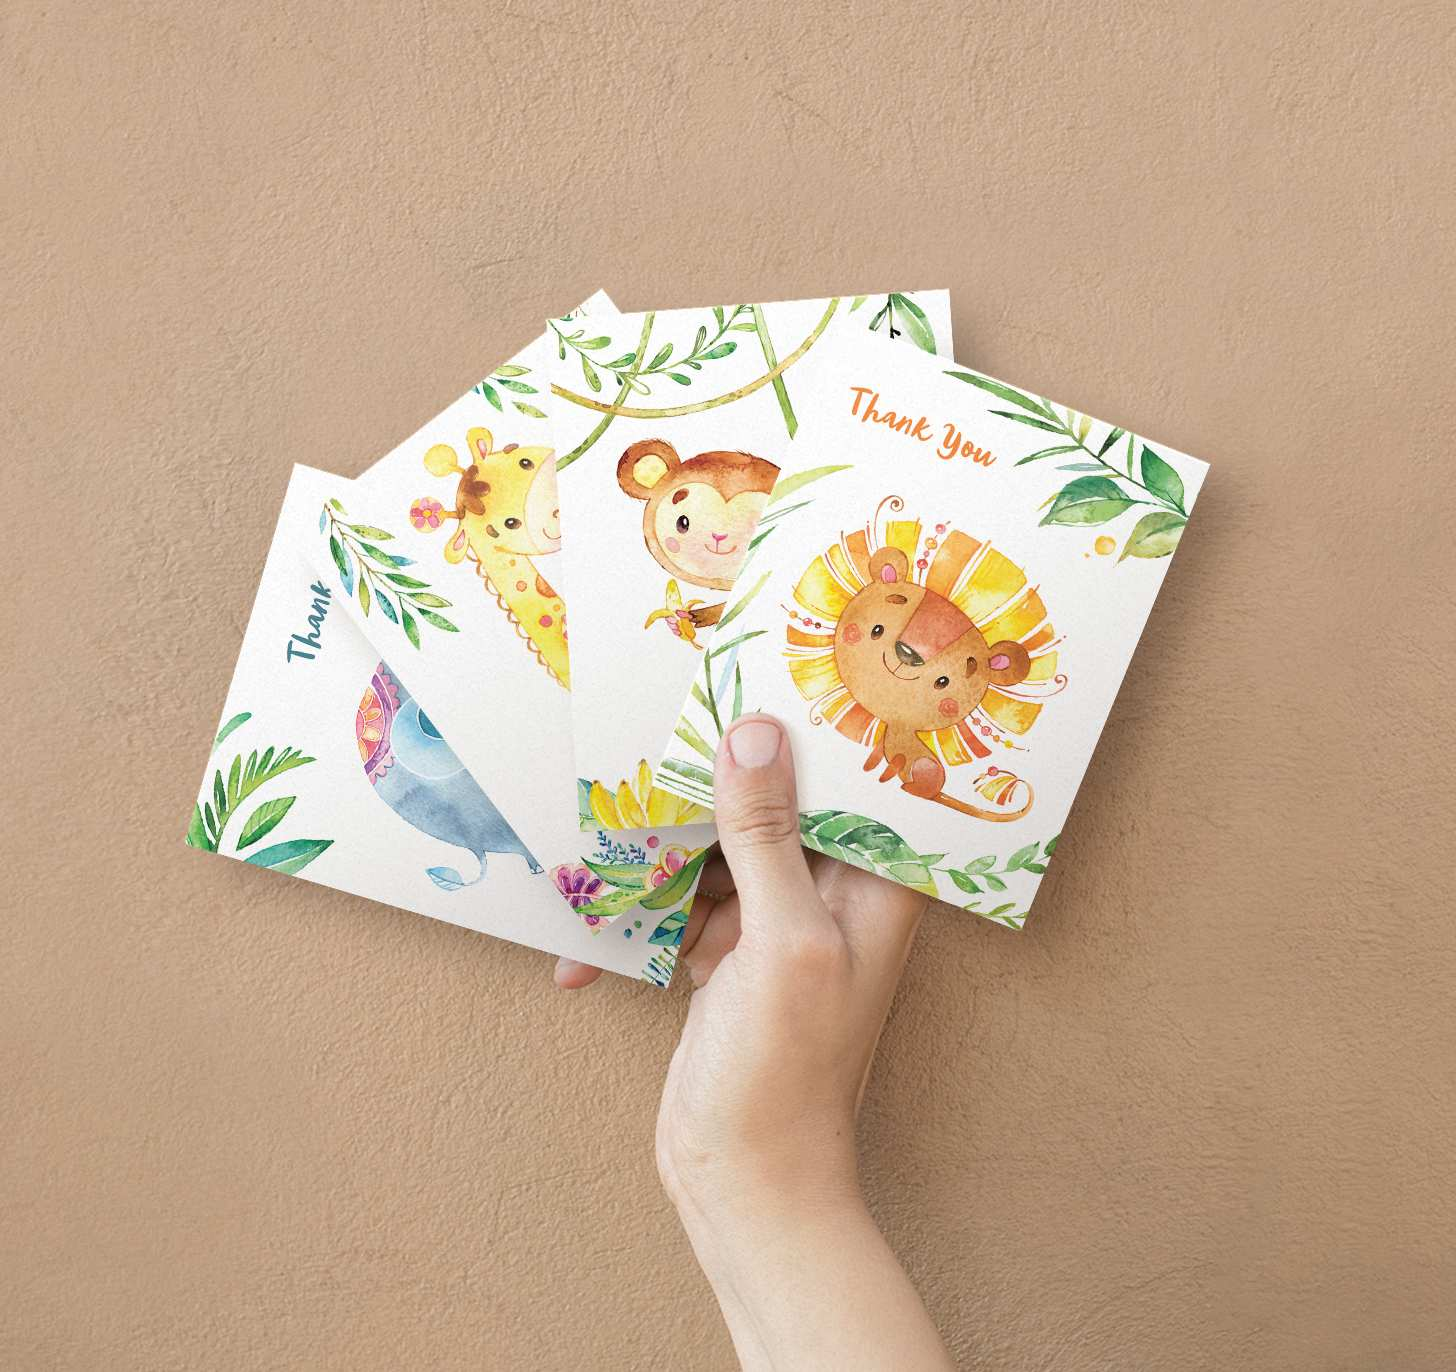 Woman's hand holding four overlapping cards with cute lion, monkey, giraffe, and elephant designs